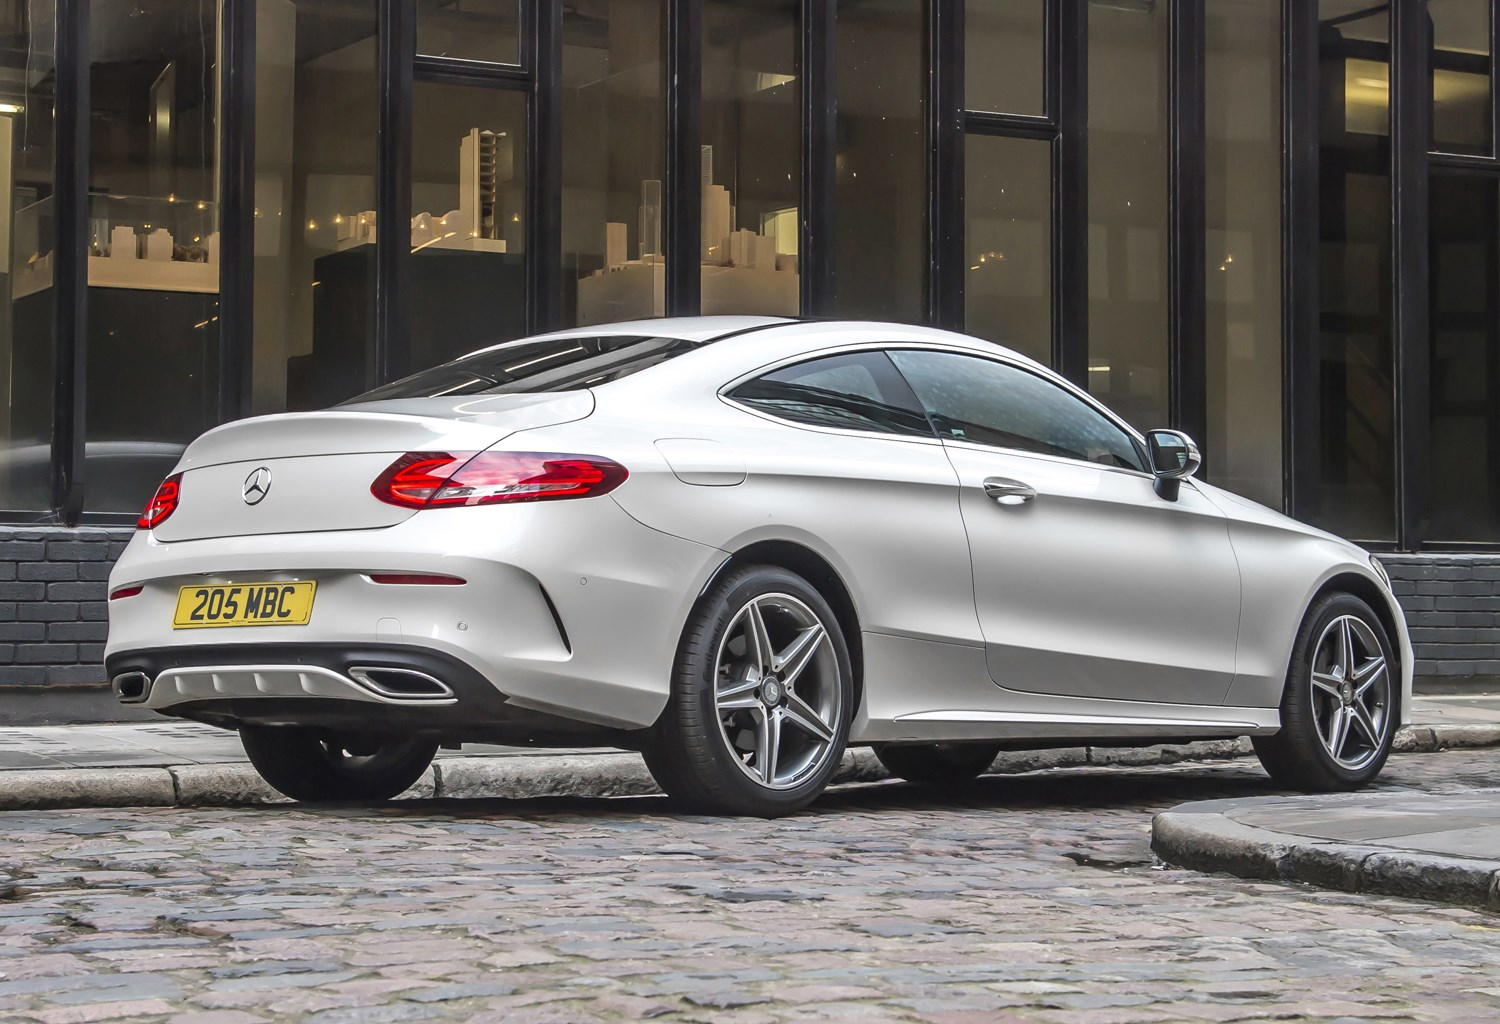 Mercedes Benz C Cl Coupe 2016 Static Exterior